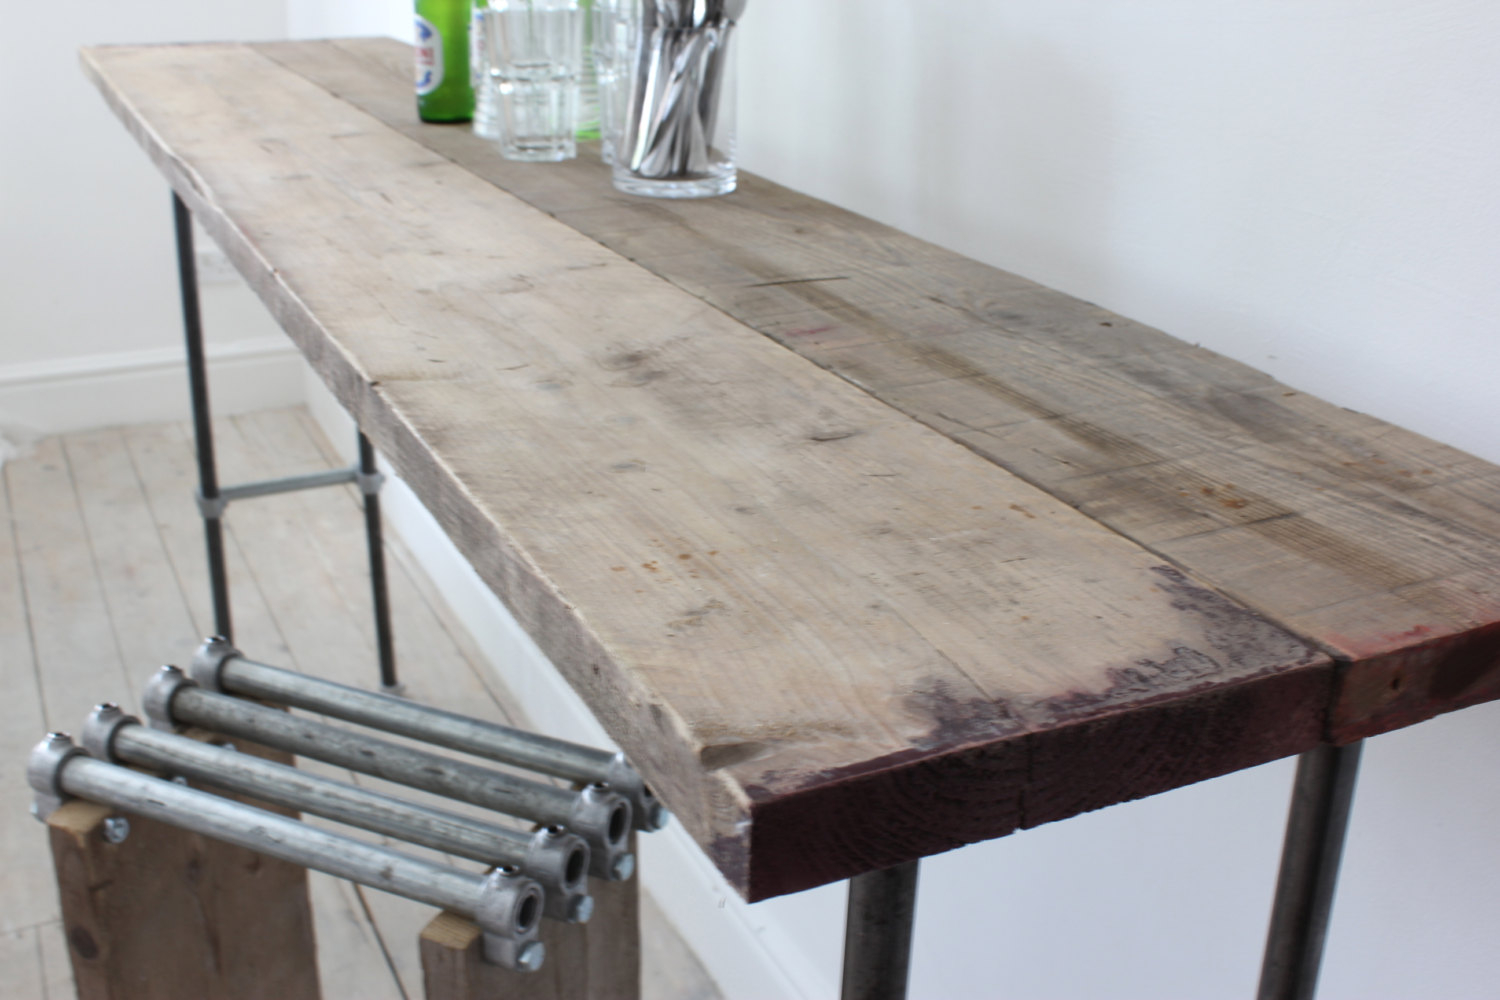 Reclaimed scaffolding boards and